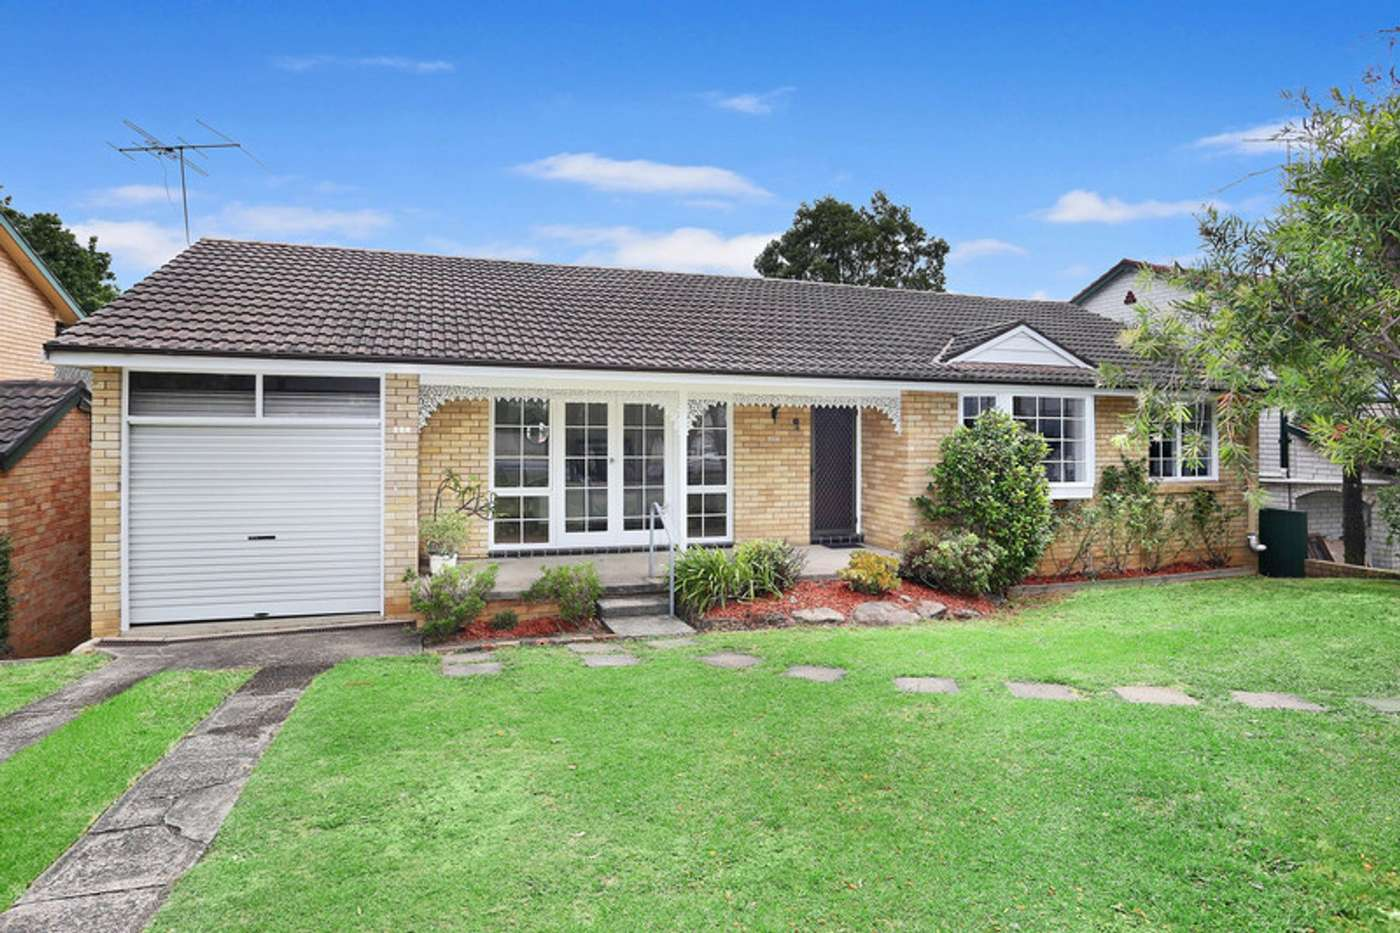 Main view of Homely house listing, 356 North Rocks Road, Carlingford, NSW 2118